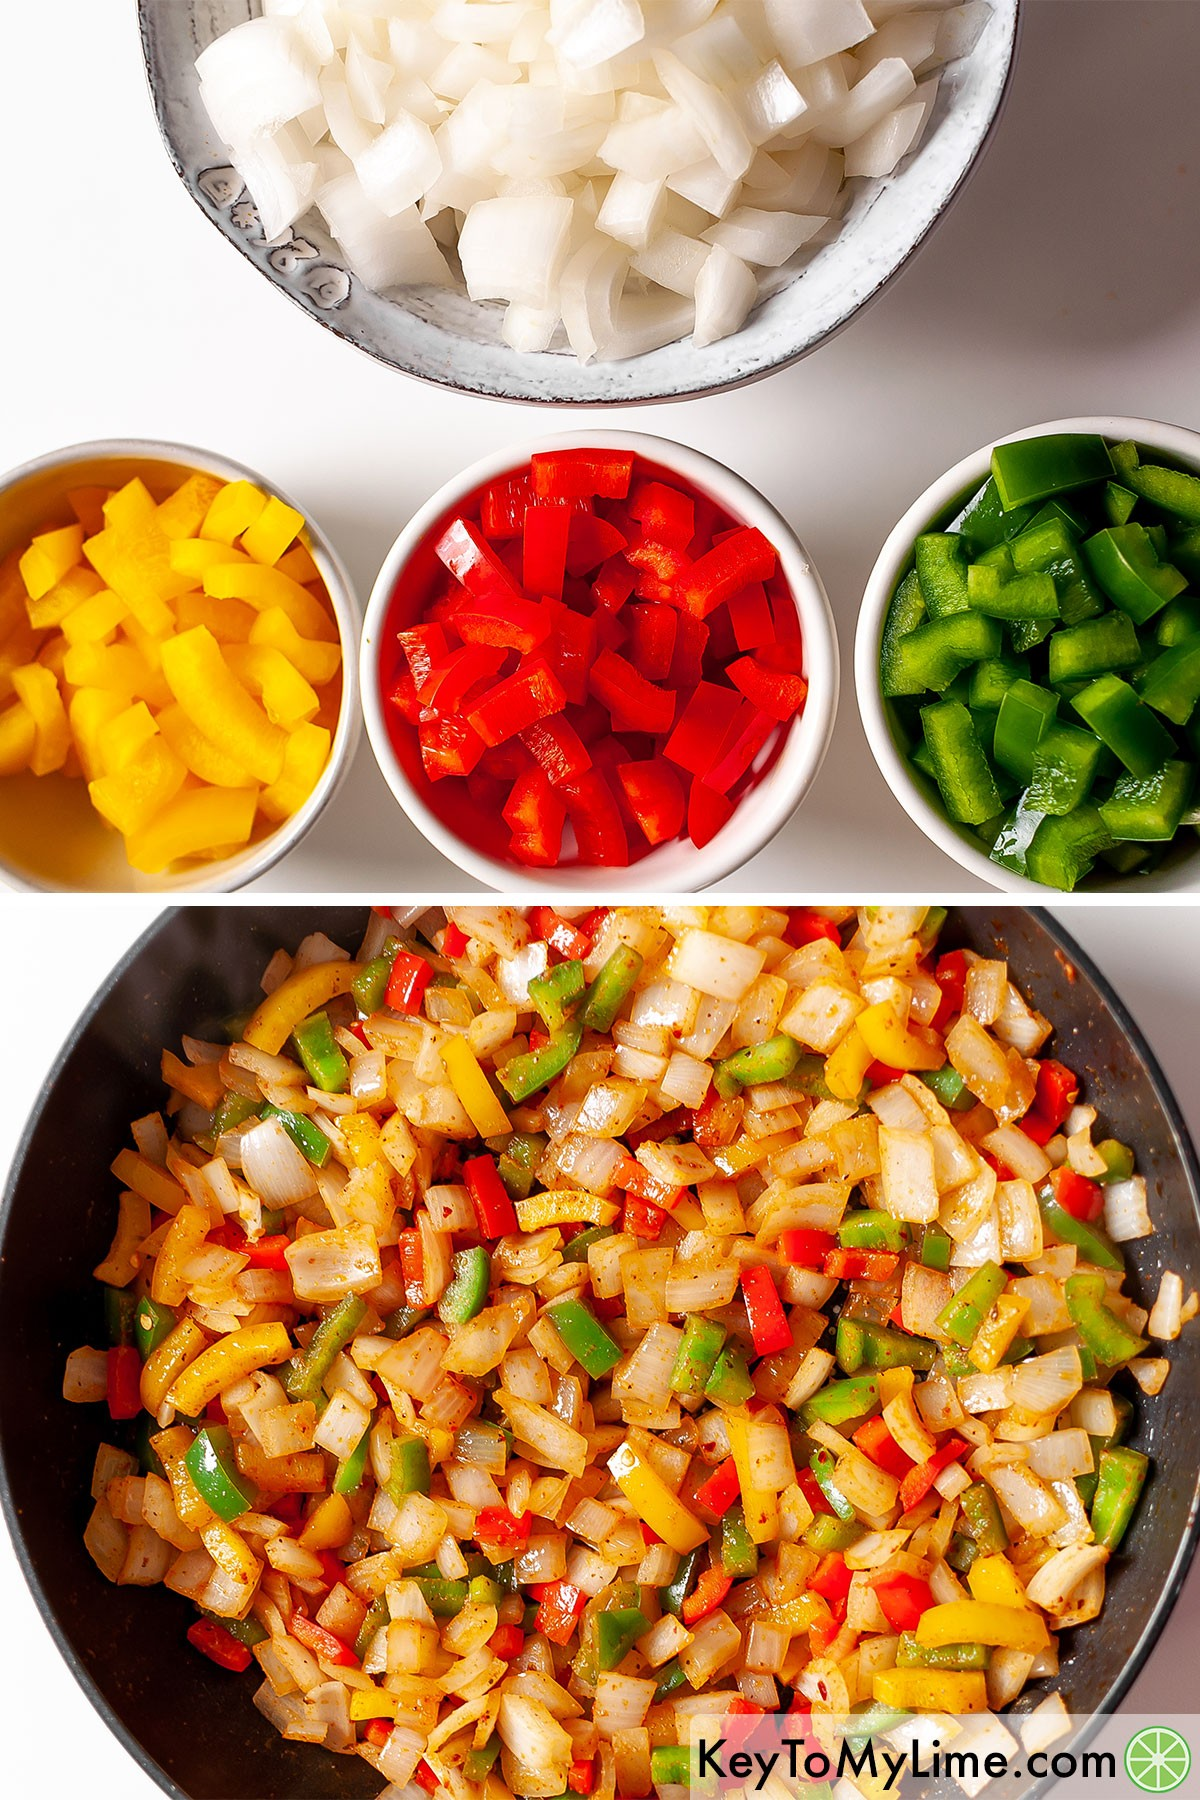 A process collage showing chopped onion and bell peppers before and after cooking.